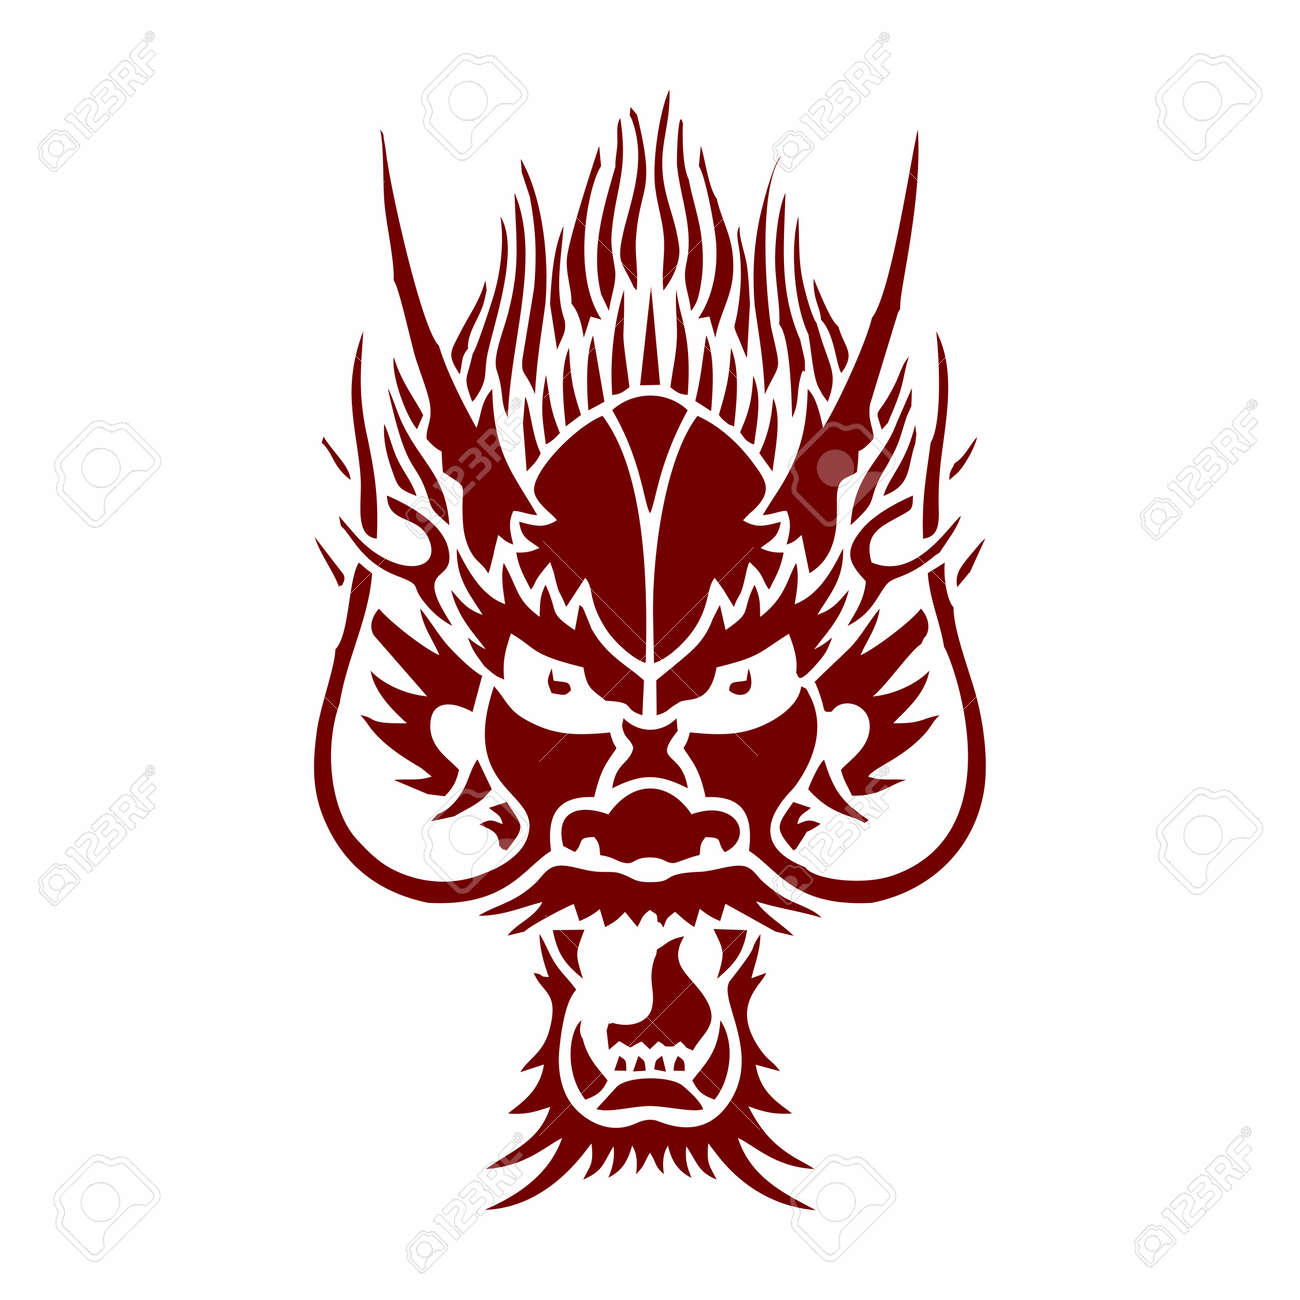 b34eeed47 Vector Monochrome Chinese Dragon Face Tattoo, isolated on white background Stock  Vector - 61601516